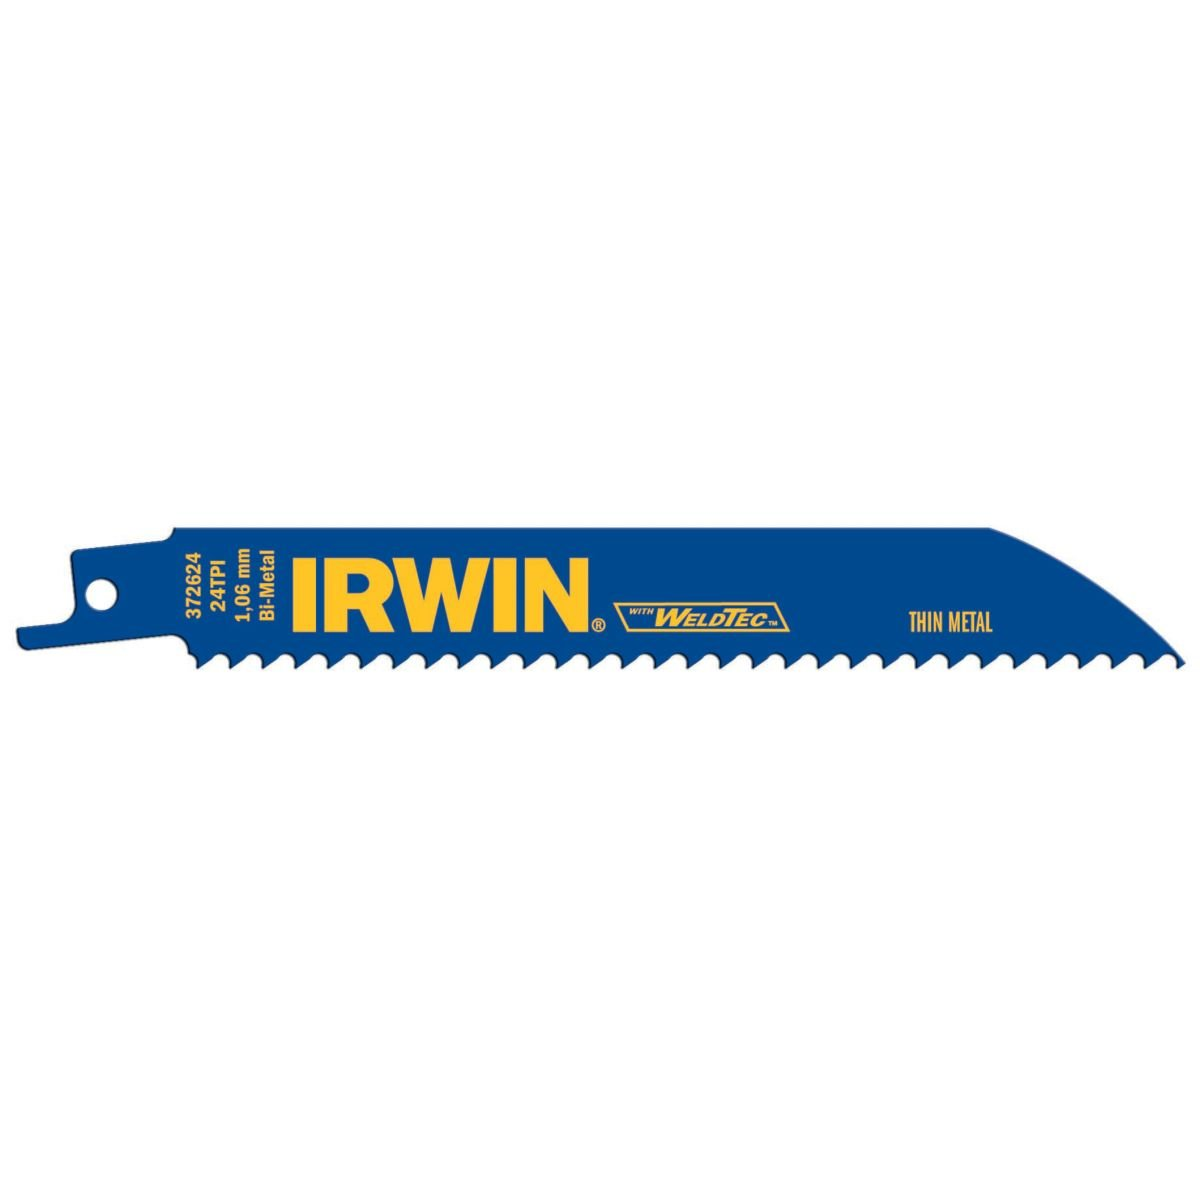 Irwin tools reciprocating saw blade metal cutting 6 inch 14 tpi irwin tools reciprocating saw blade metal cutting 6 inch 14 tpi 372614b reciprocating saw blades amazon greentooth Gallery